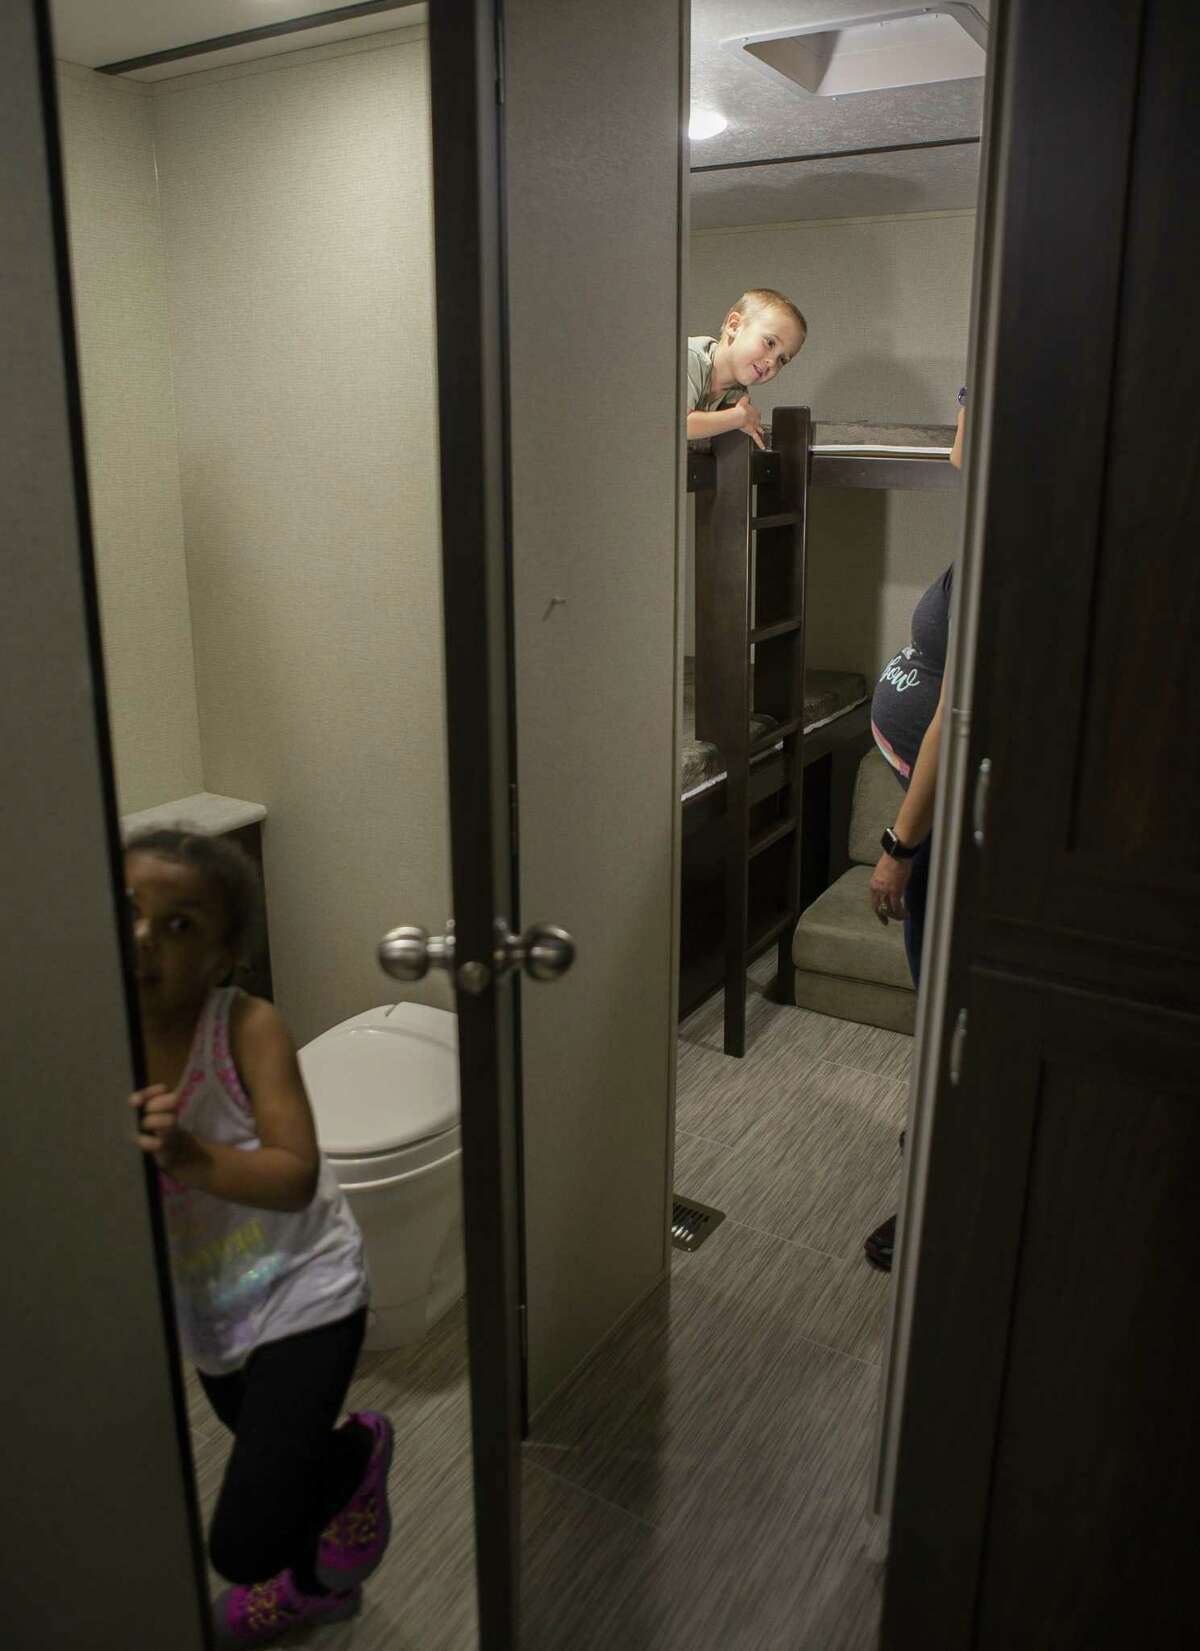 Four year-old Wade Hall tries out the bunkbeds in a trailer while his sister, Shay, 5, checks out the bathroom as the siblings explore the RV show with their parents Clint and Laura Hall during the Houston RV Show at NRG Center, Wednesday, Feb. 6, 2019. The family has been on the look out for an RV to fit their family of five with one more child on the way.